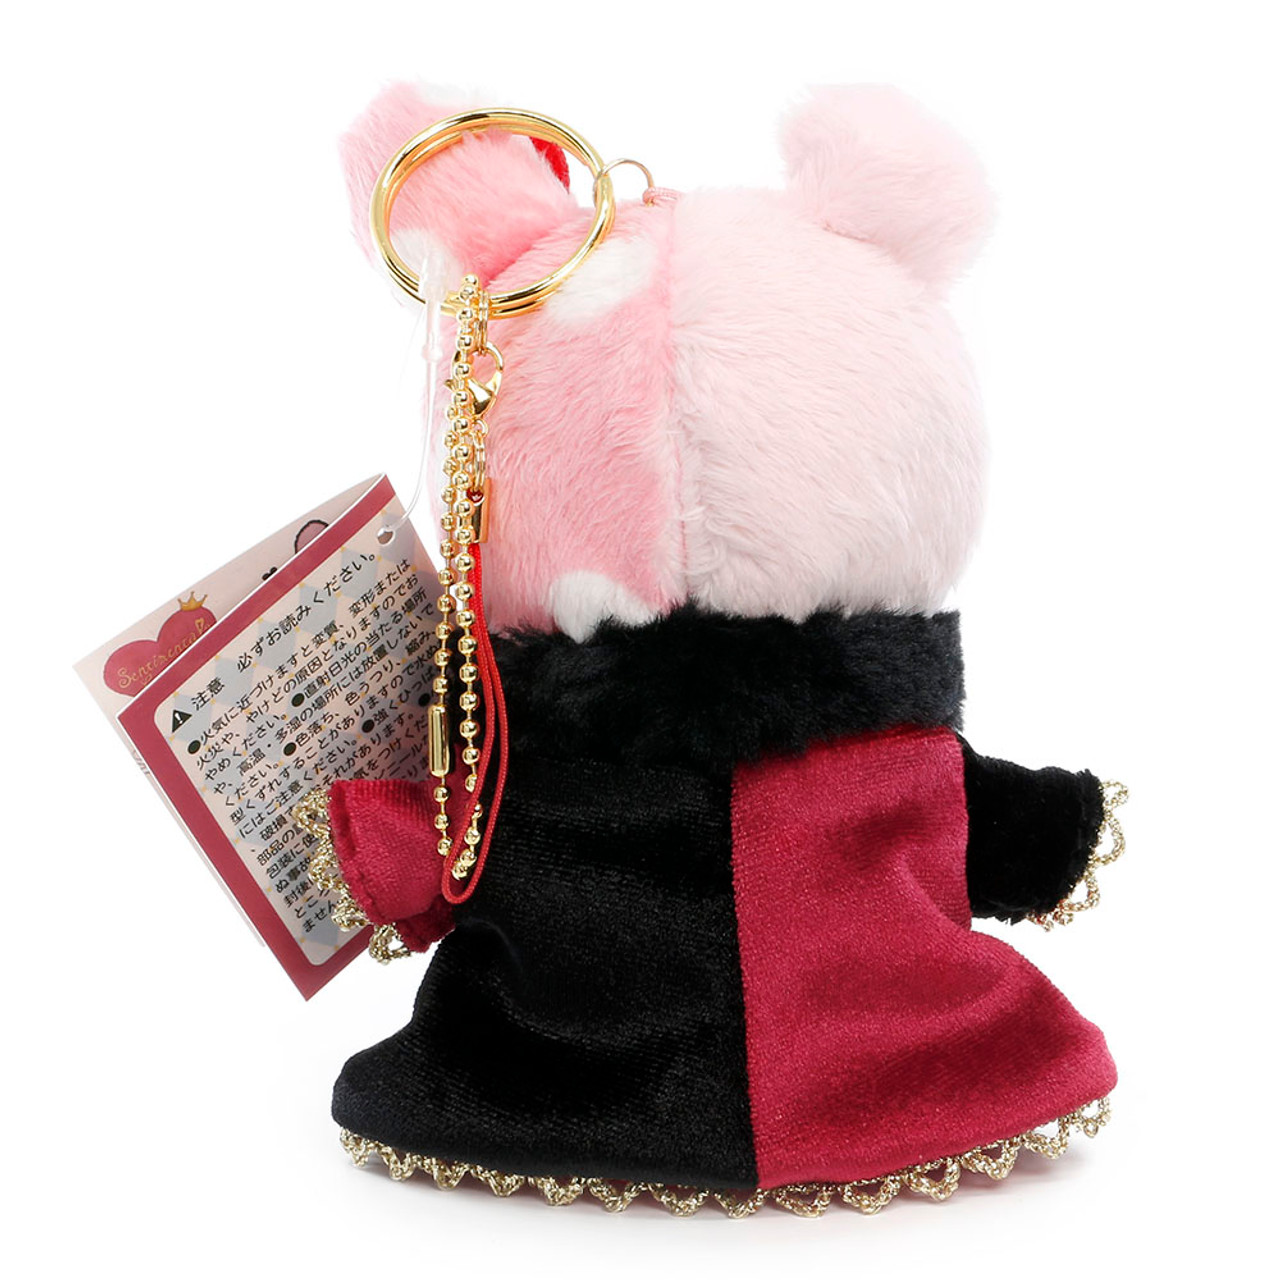 San-x Sentimental Circus Shappo Bunny Queen of Hearts Plush Doll Charms ( Back View )